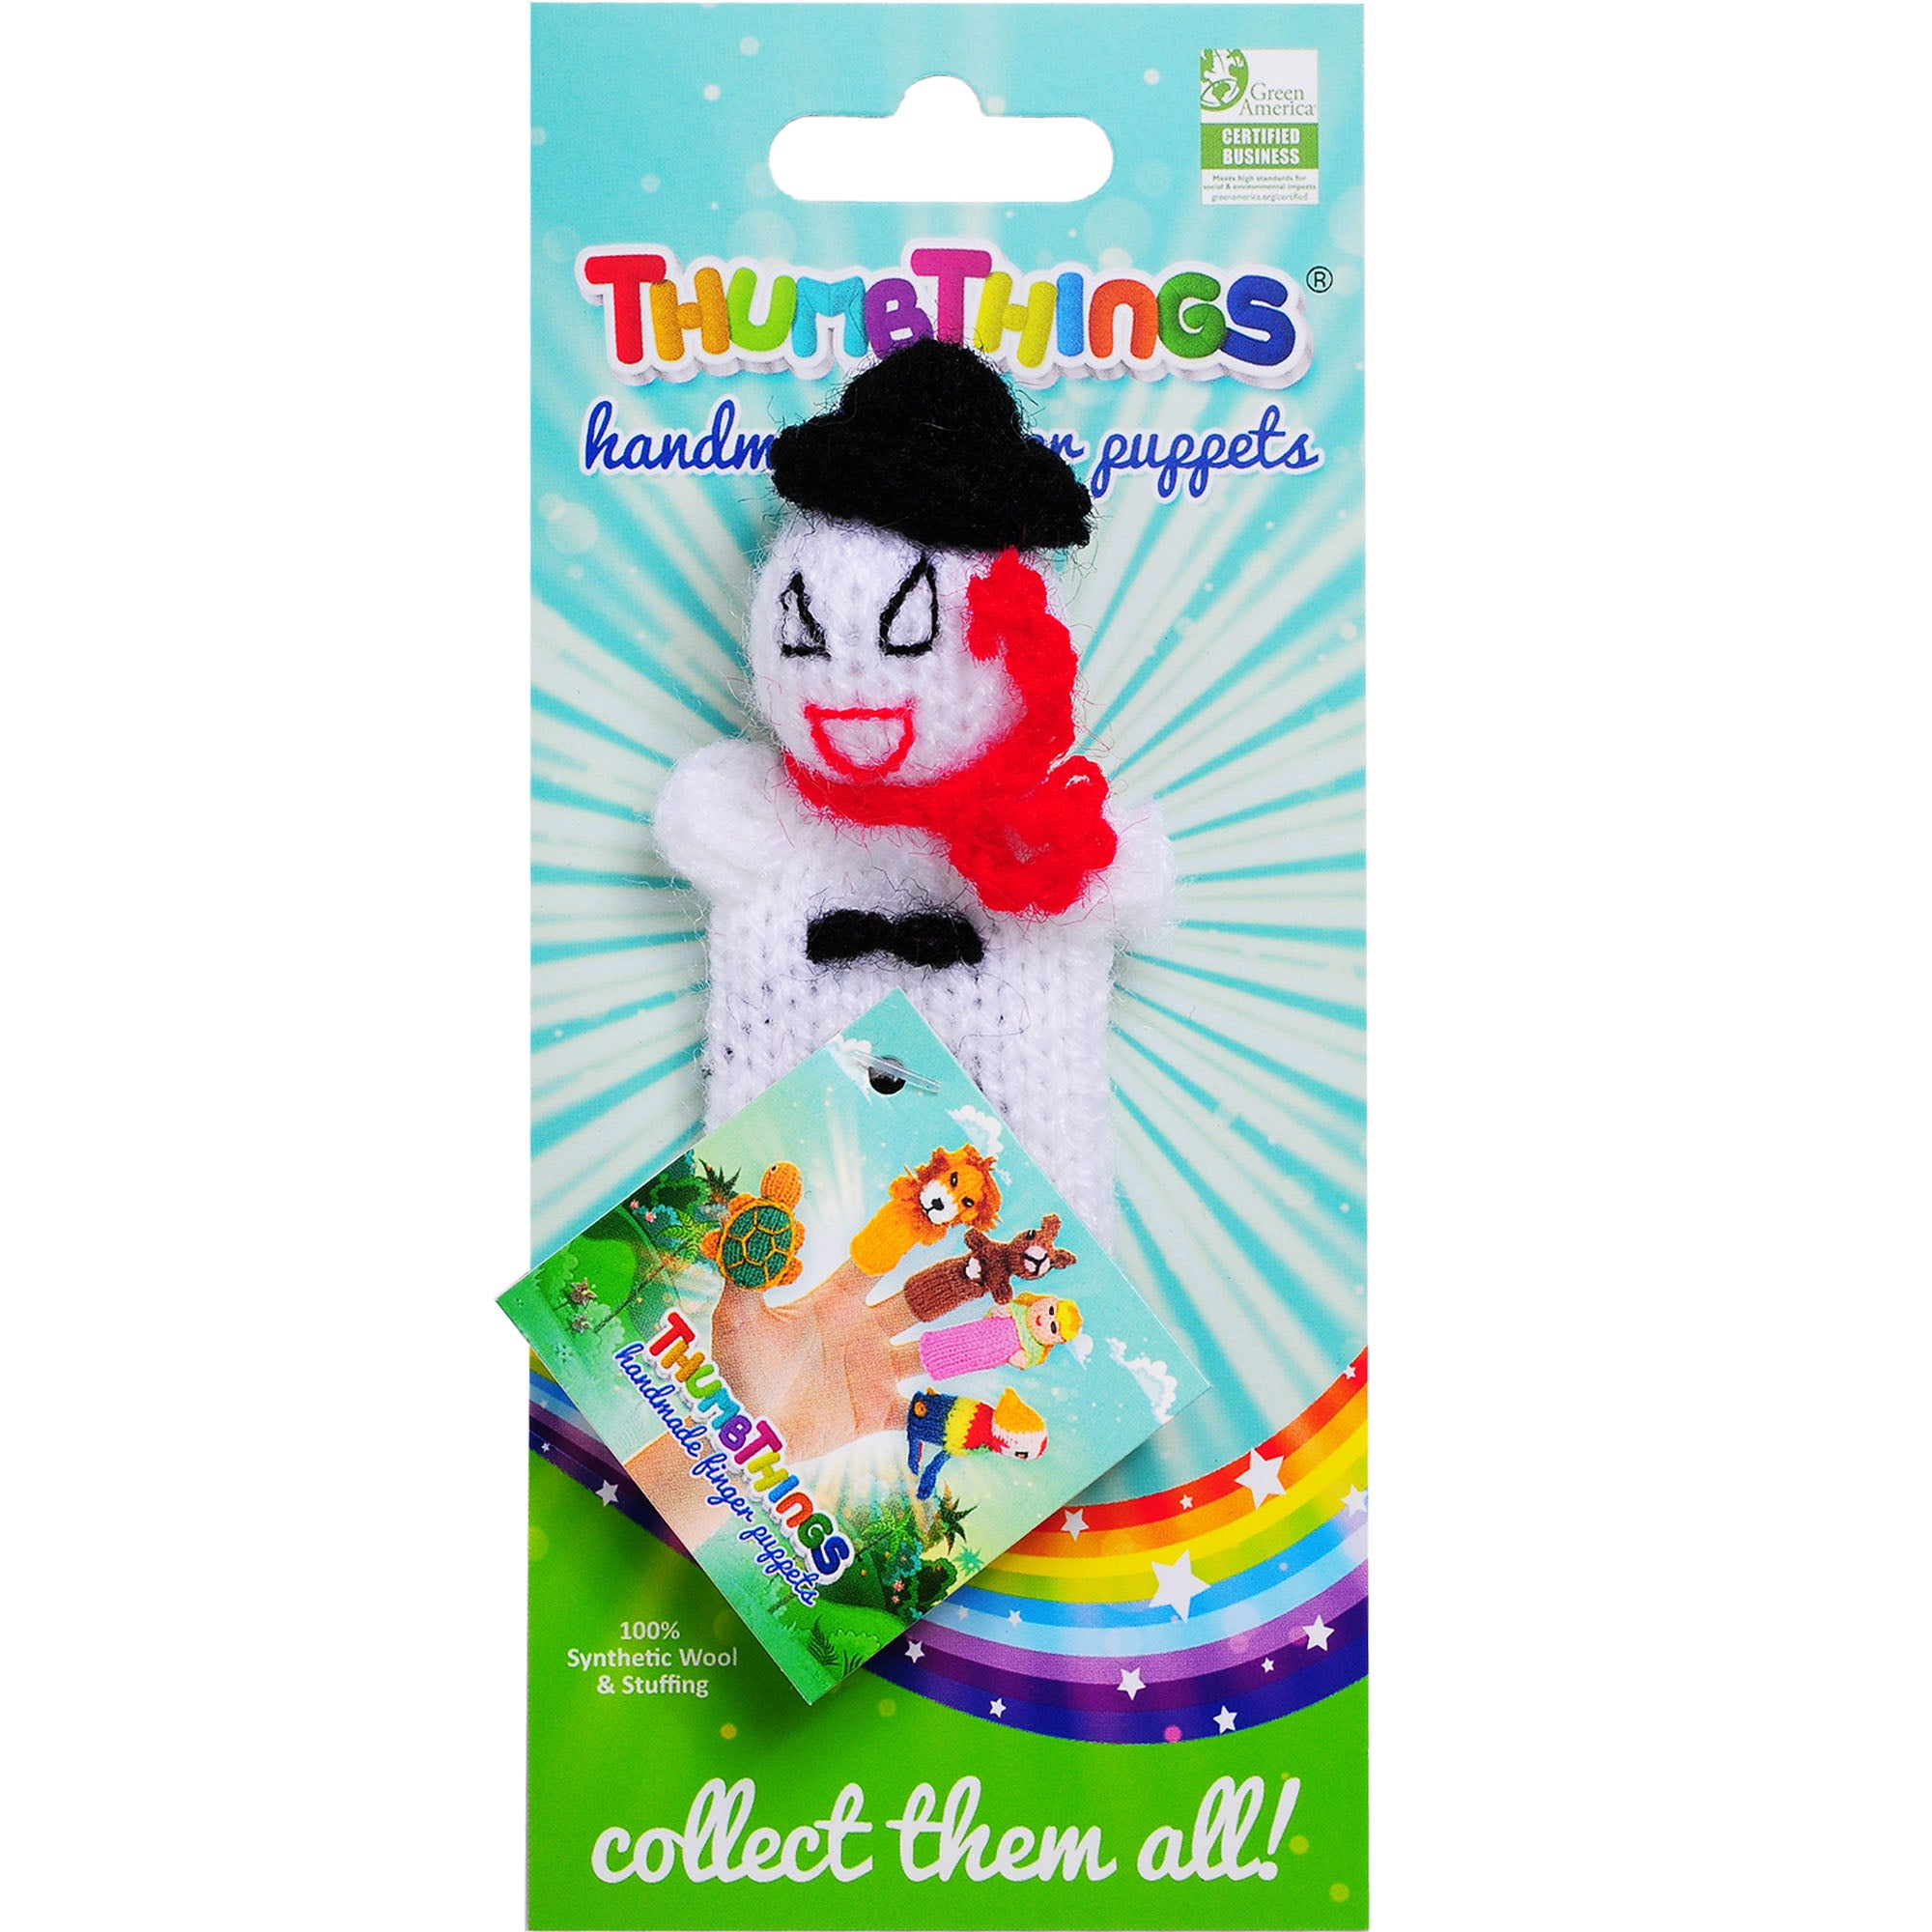 Thumbthings Snowman with a Red Scarf Finger Puppet